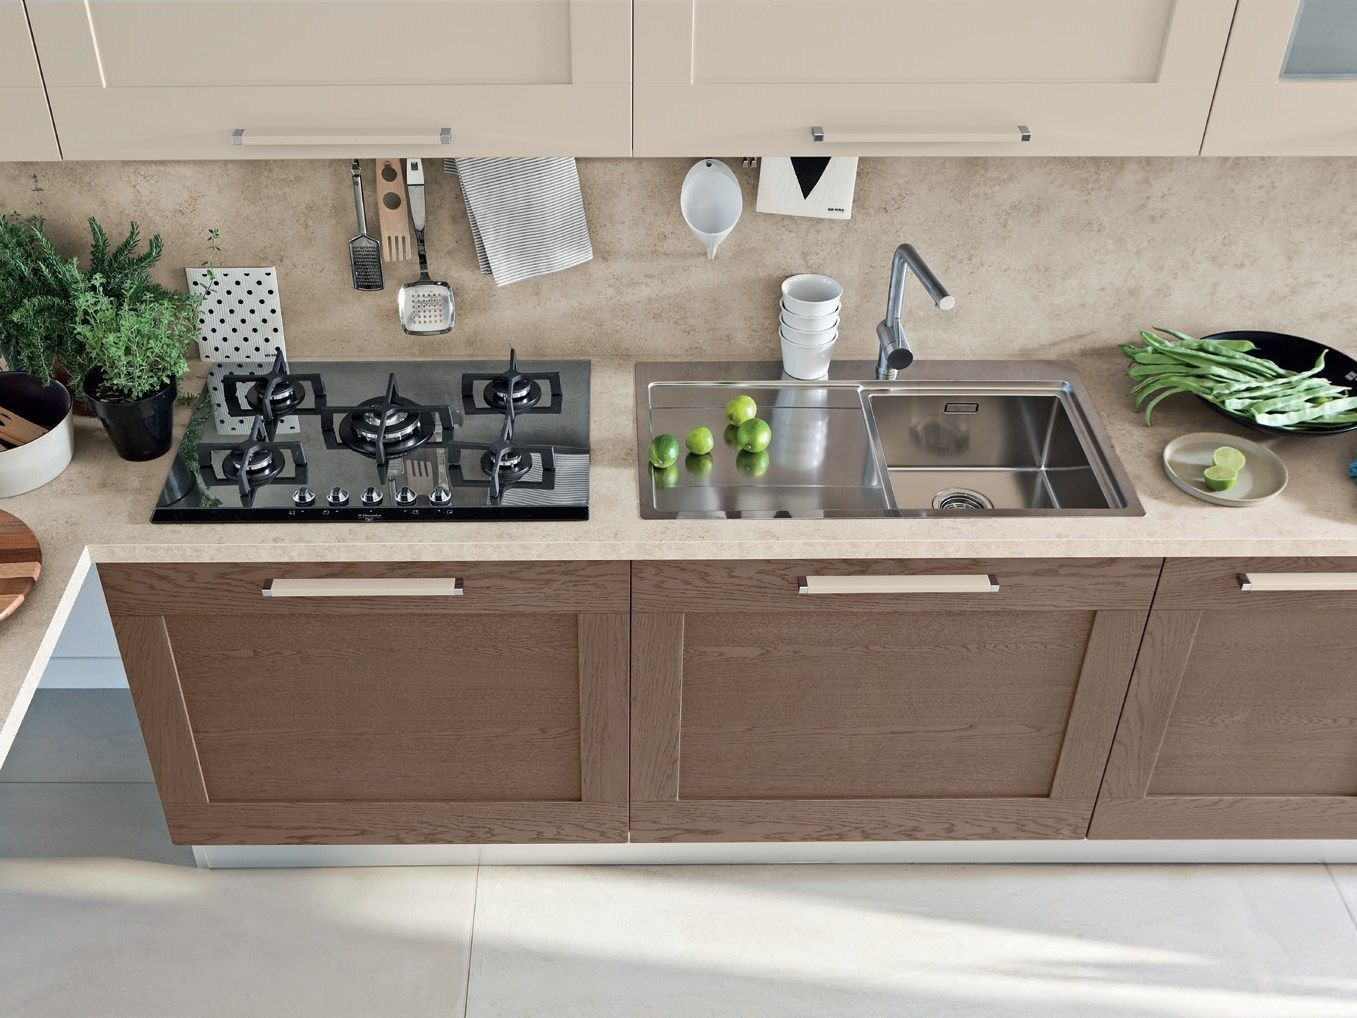 Linear wooden kitchen Gallery Collection by Cucine Lube | Home ...